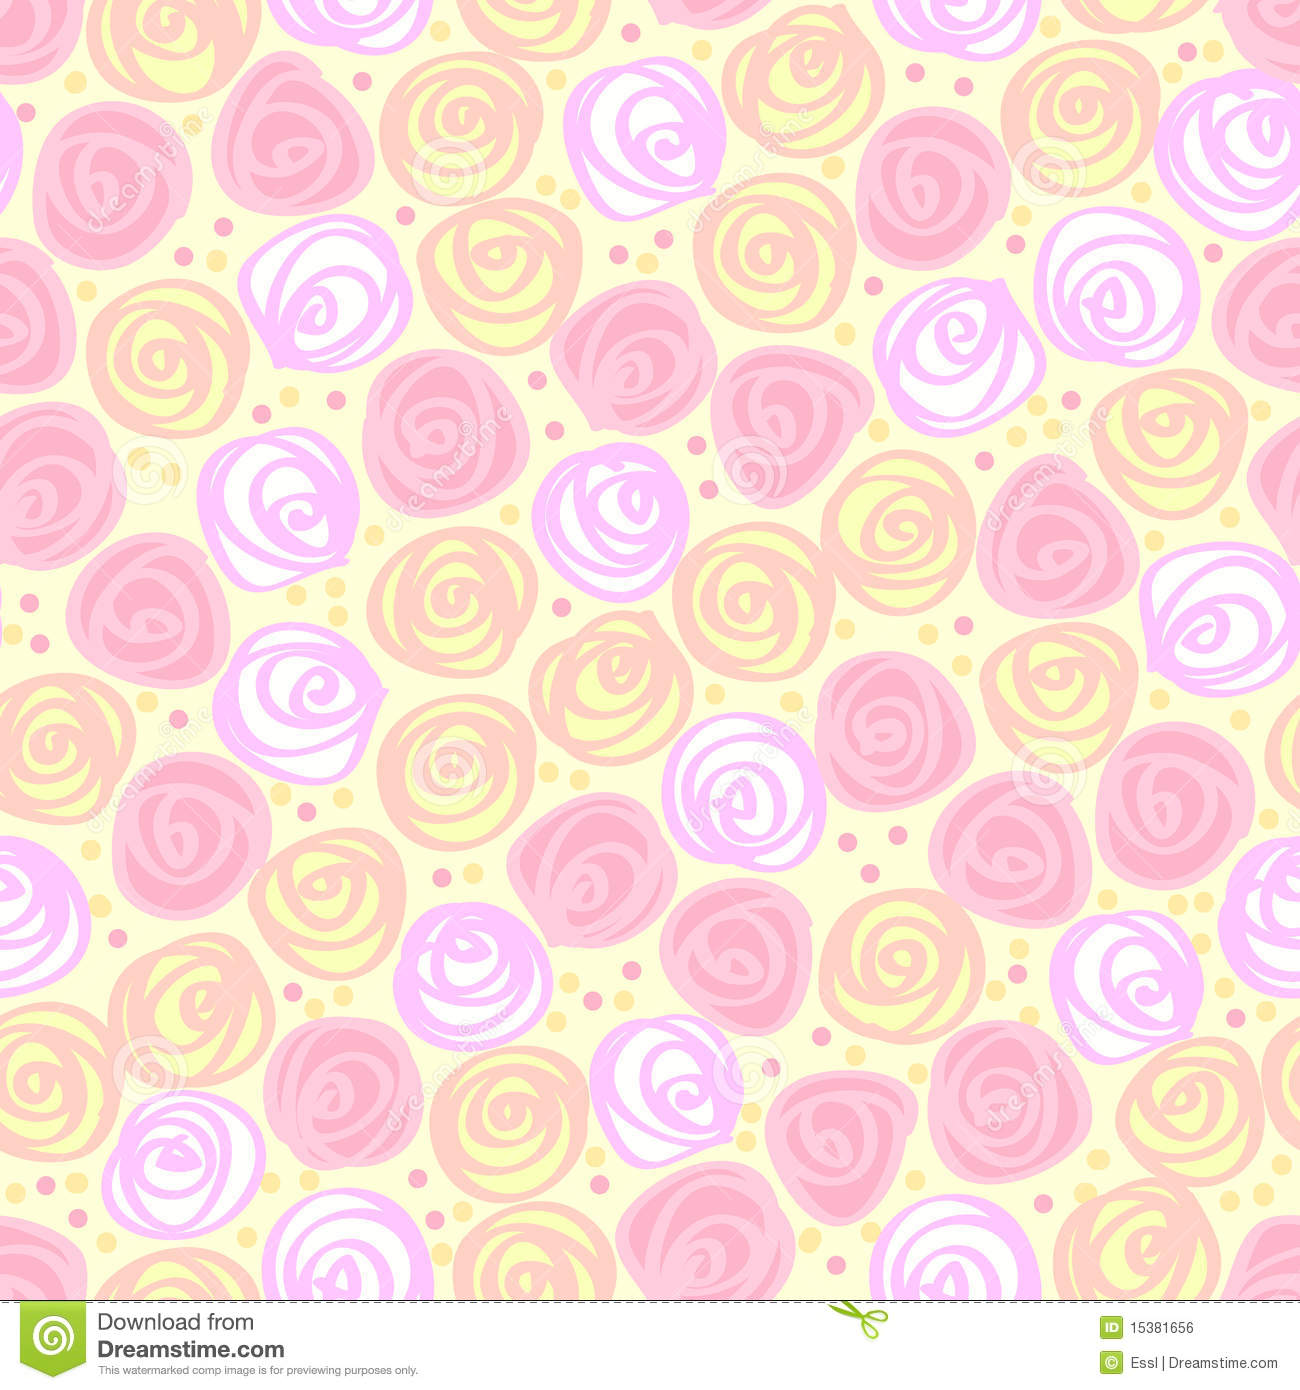 light pink floral background - photo #31